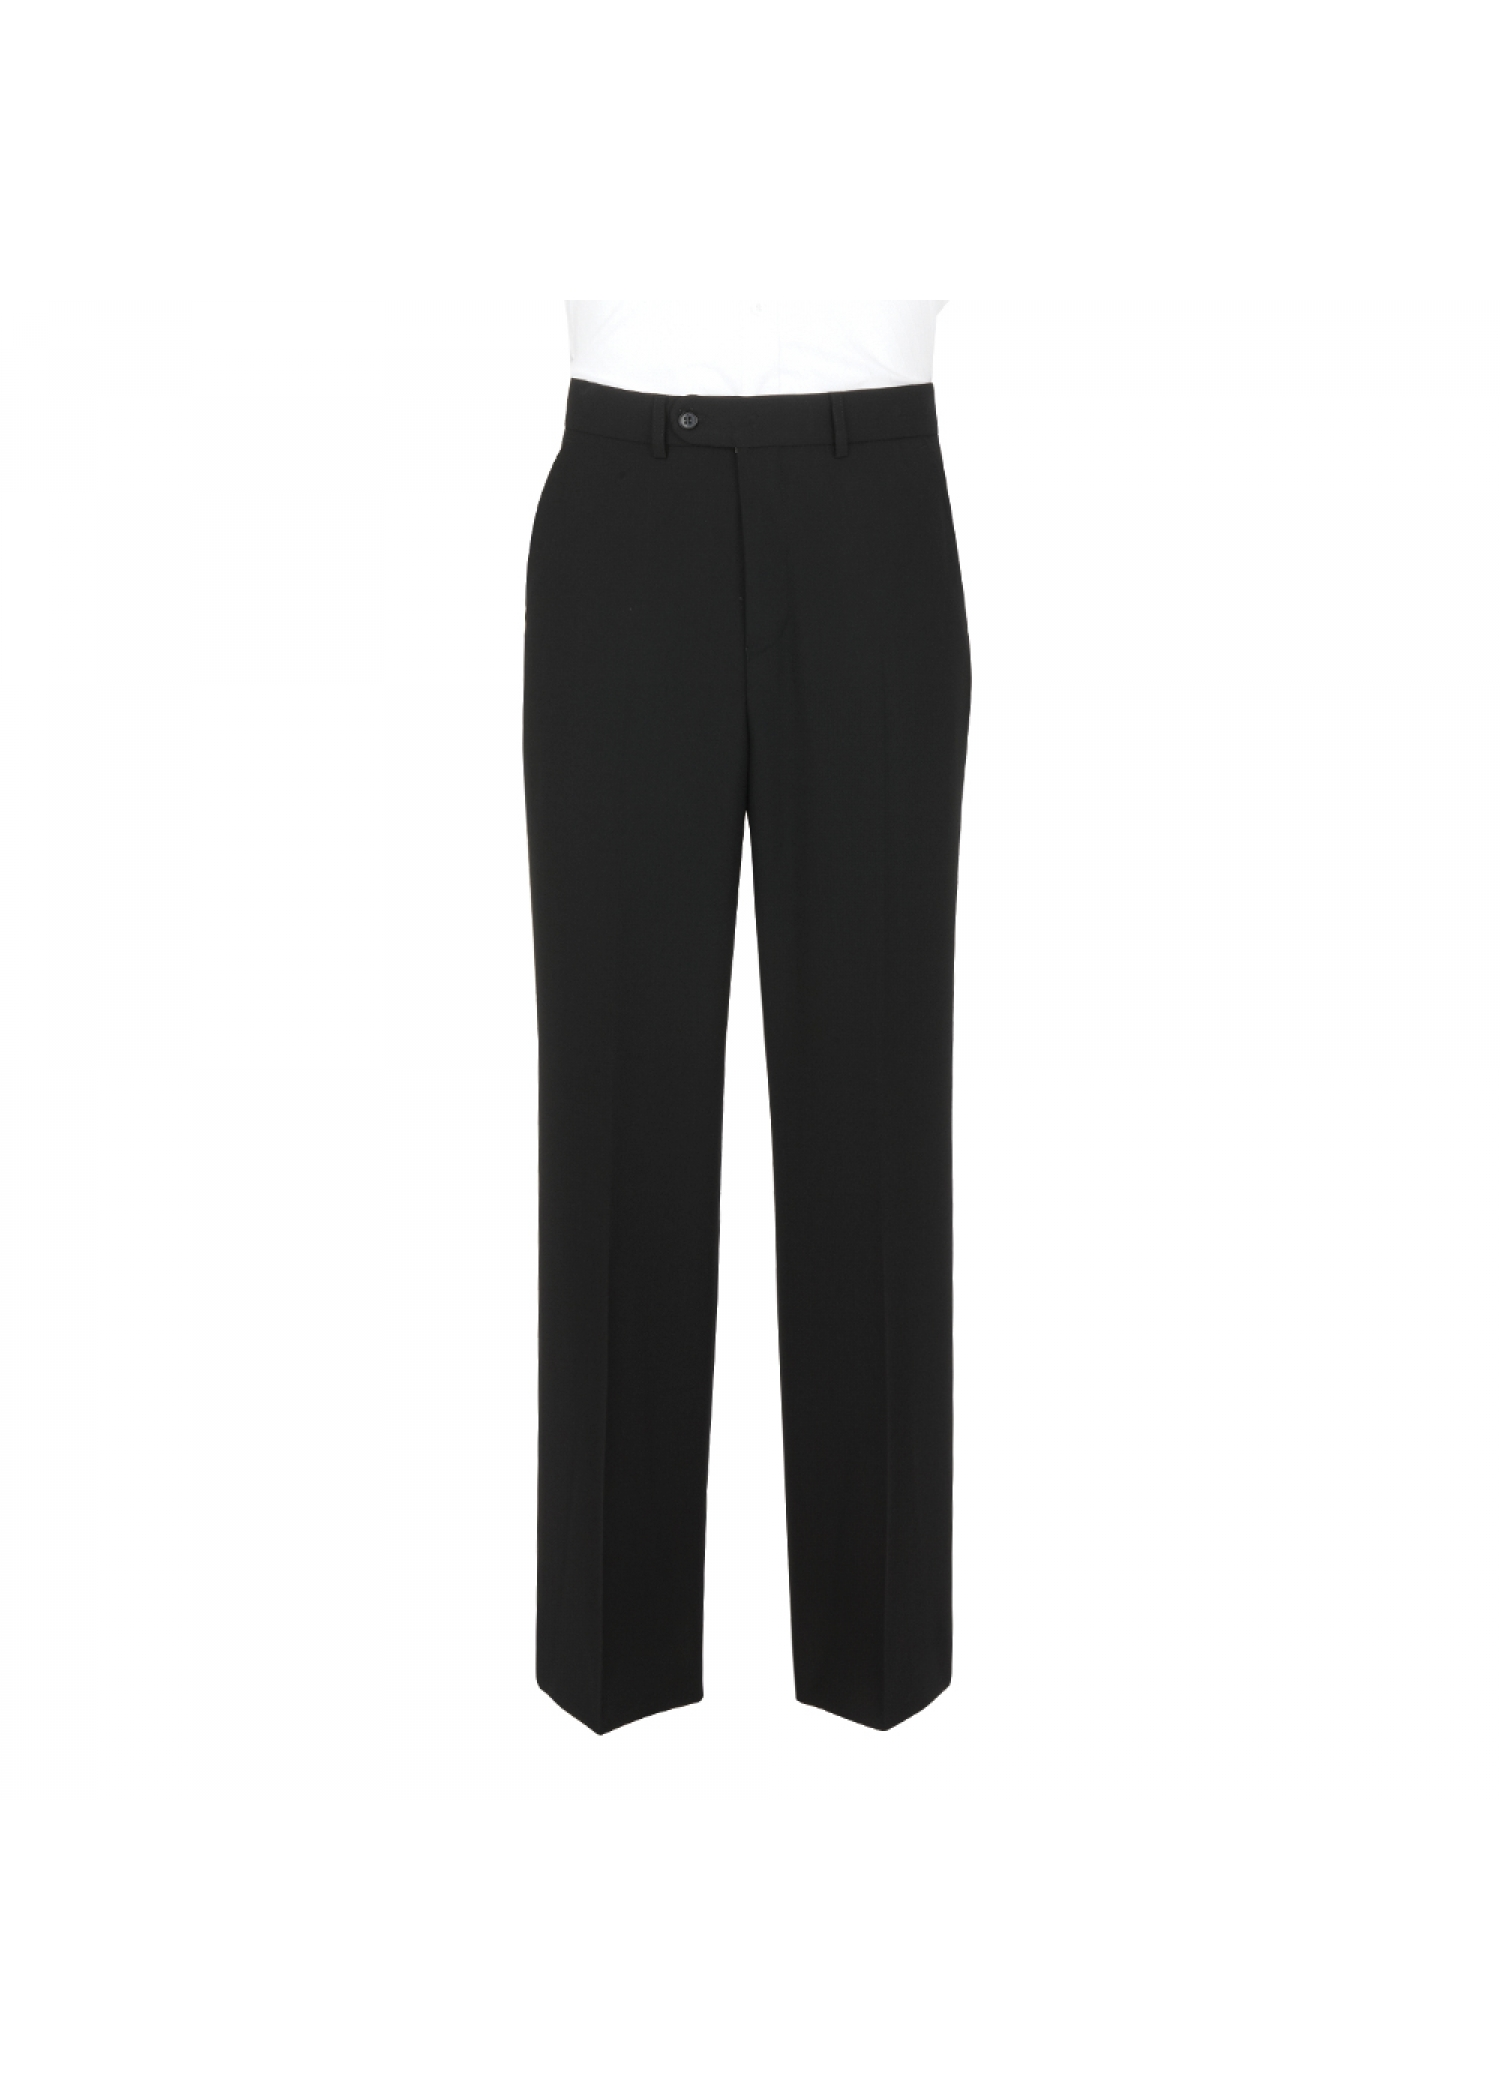 Wool Mix Black Trousers